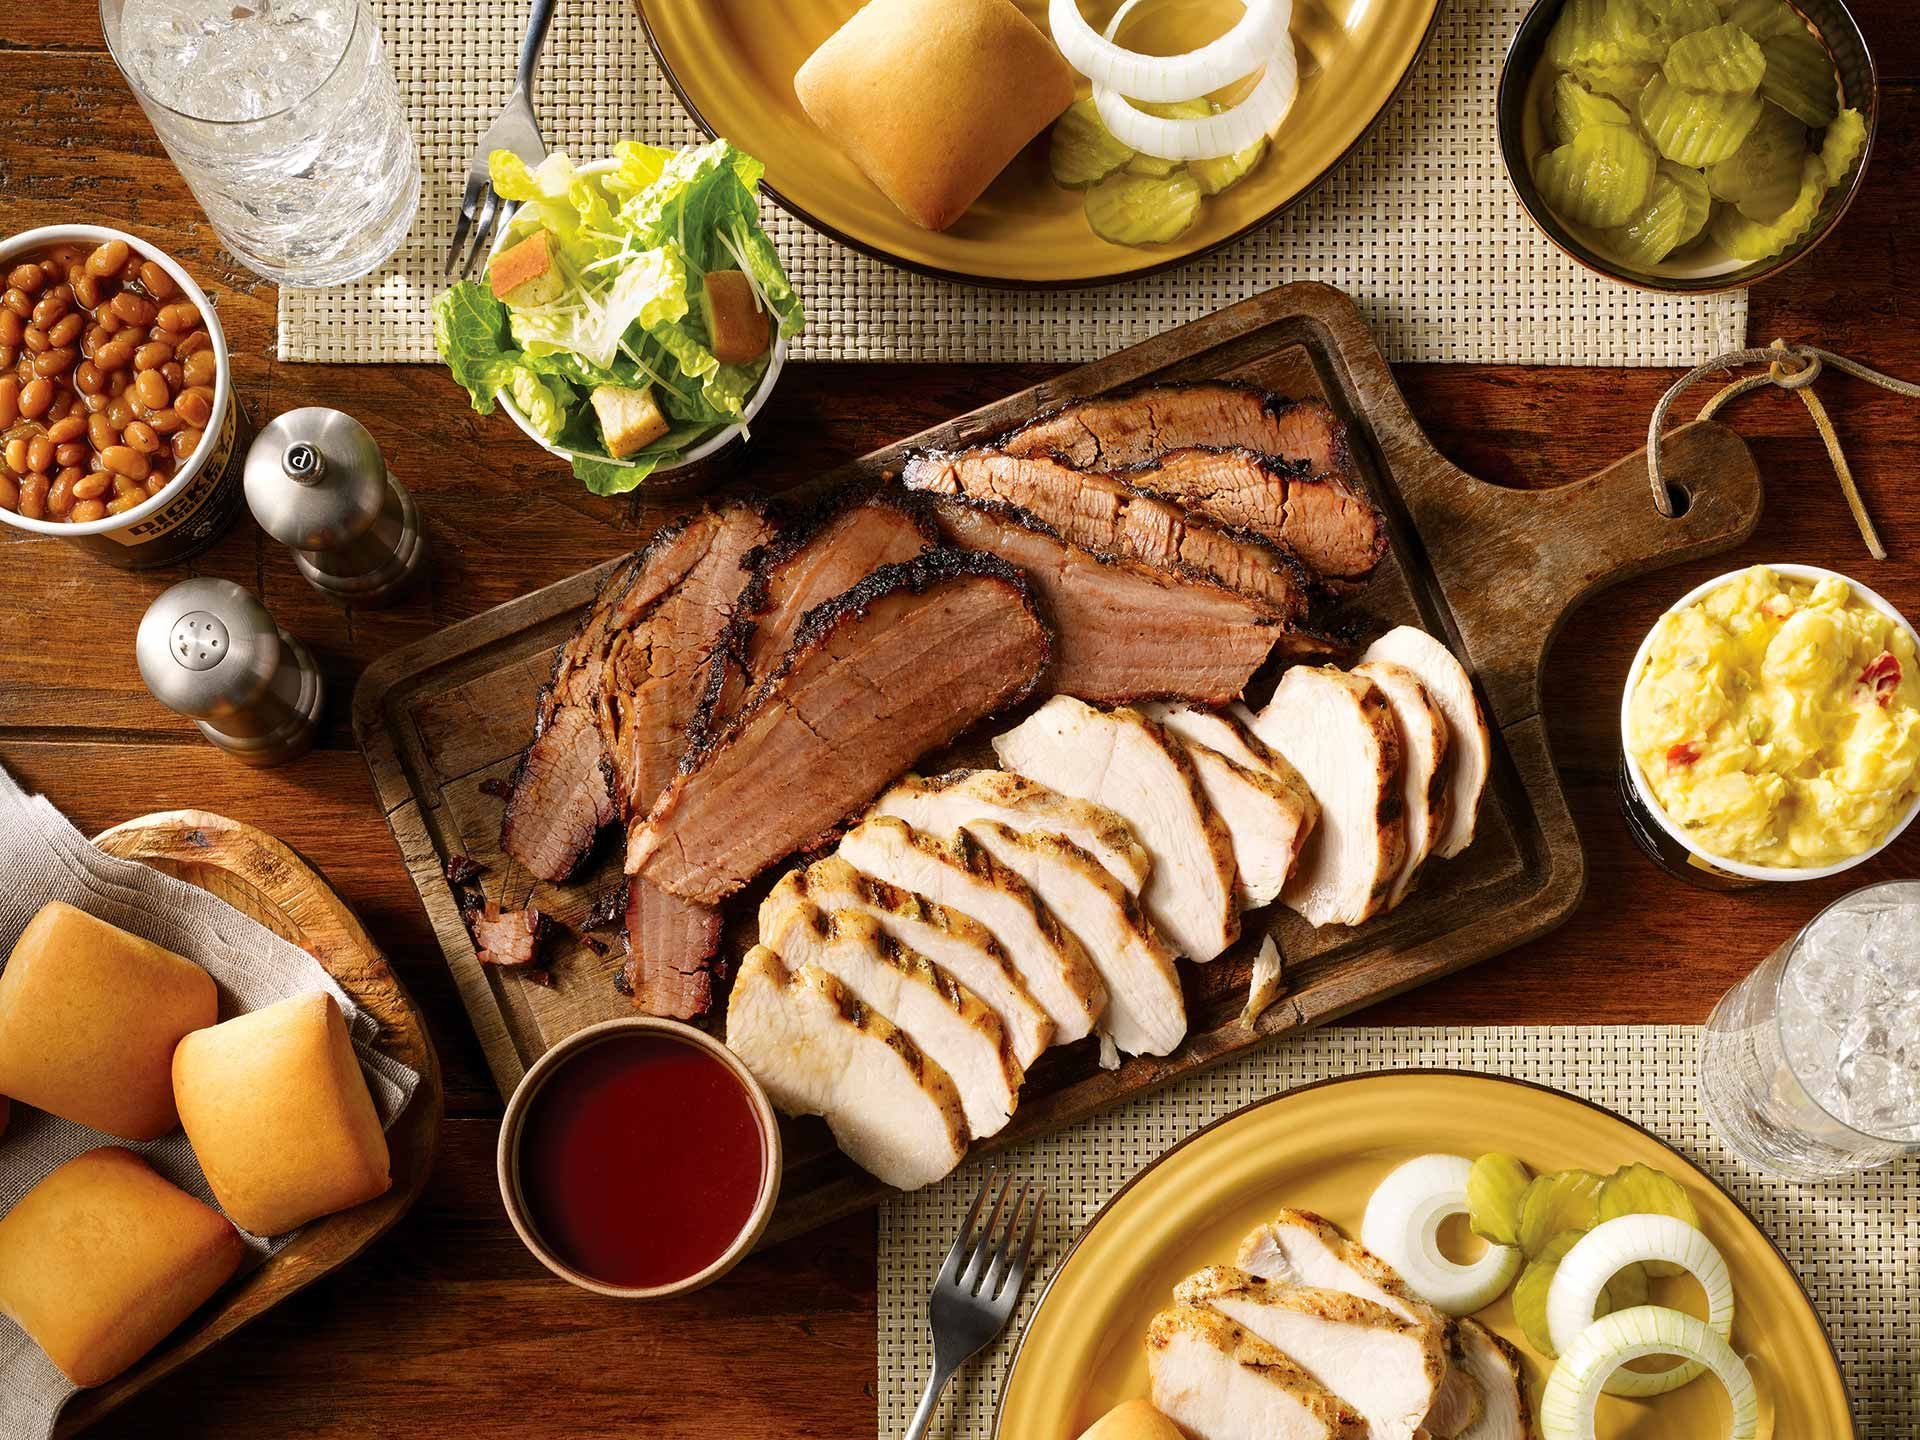 Image depicting delicious barbecue food laid down on the table